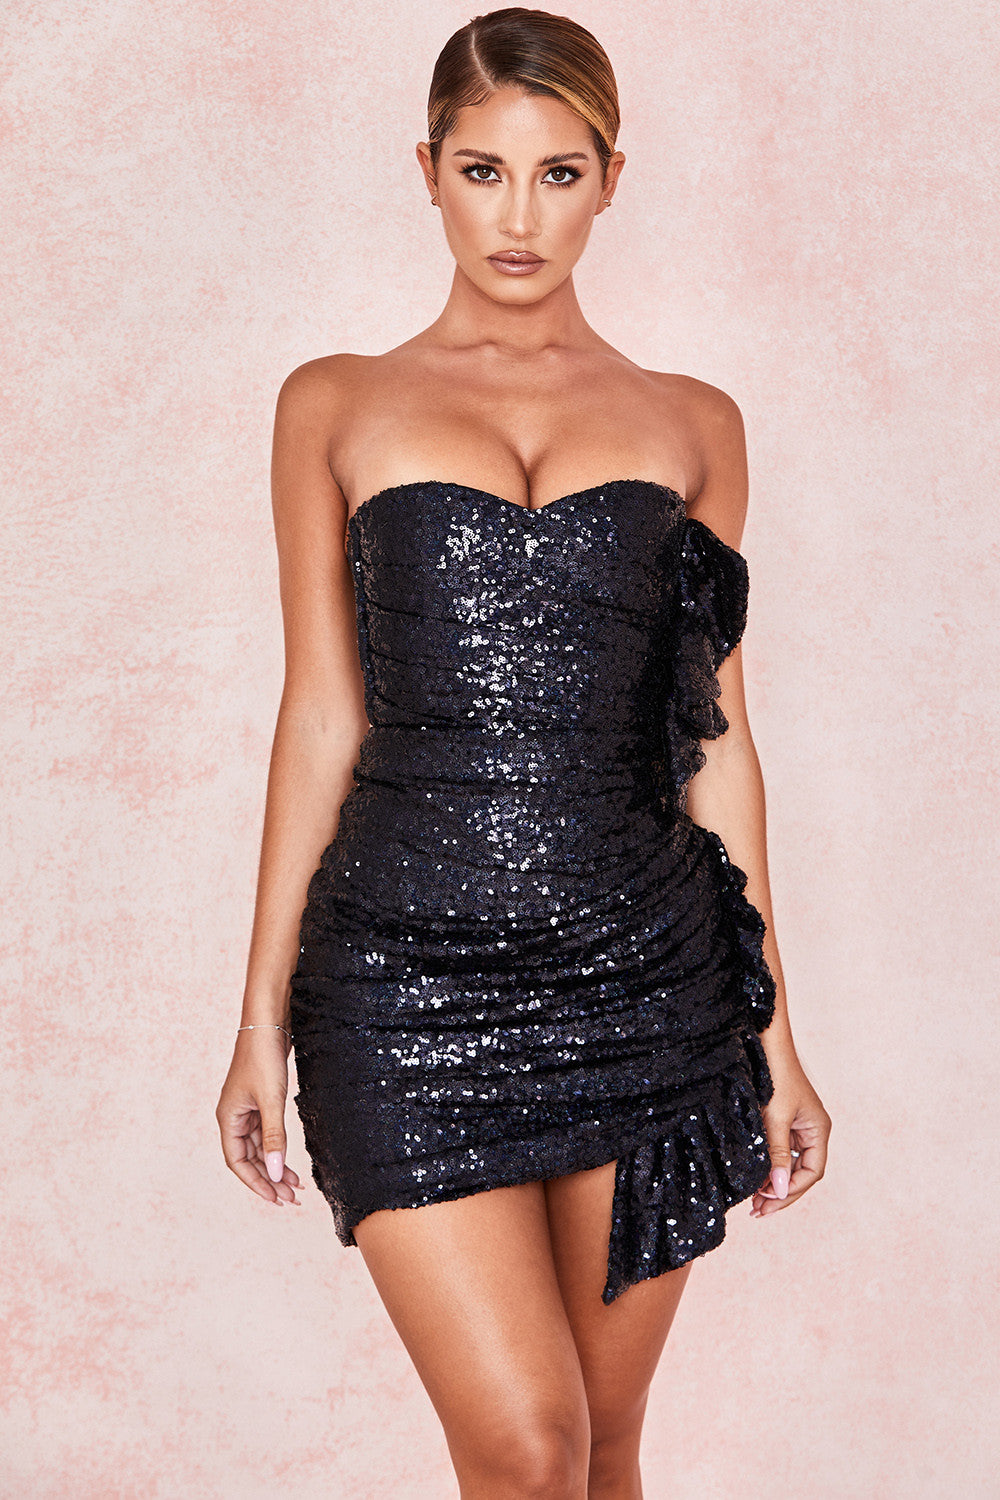 Black Two Sets Sequin Frill Mini Bodysuit Skirt - iulover